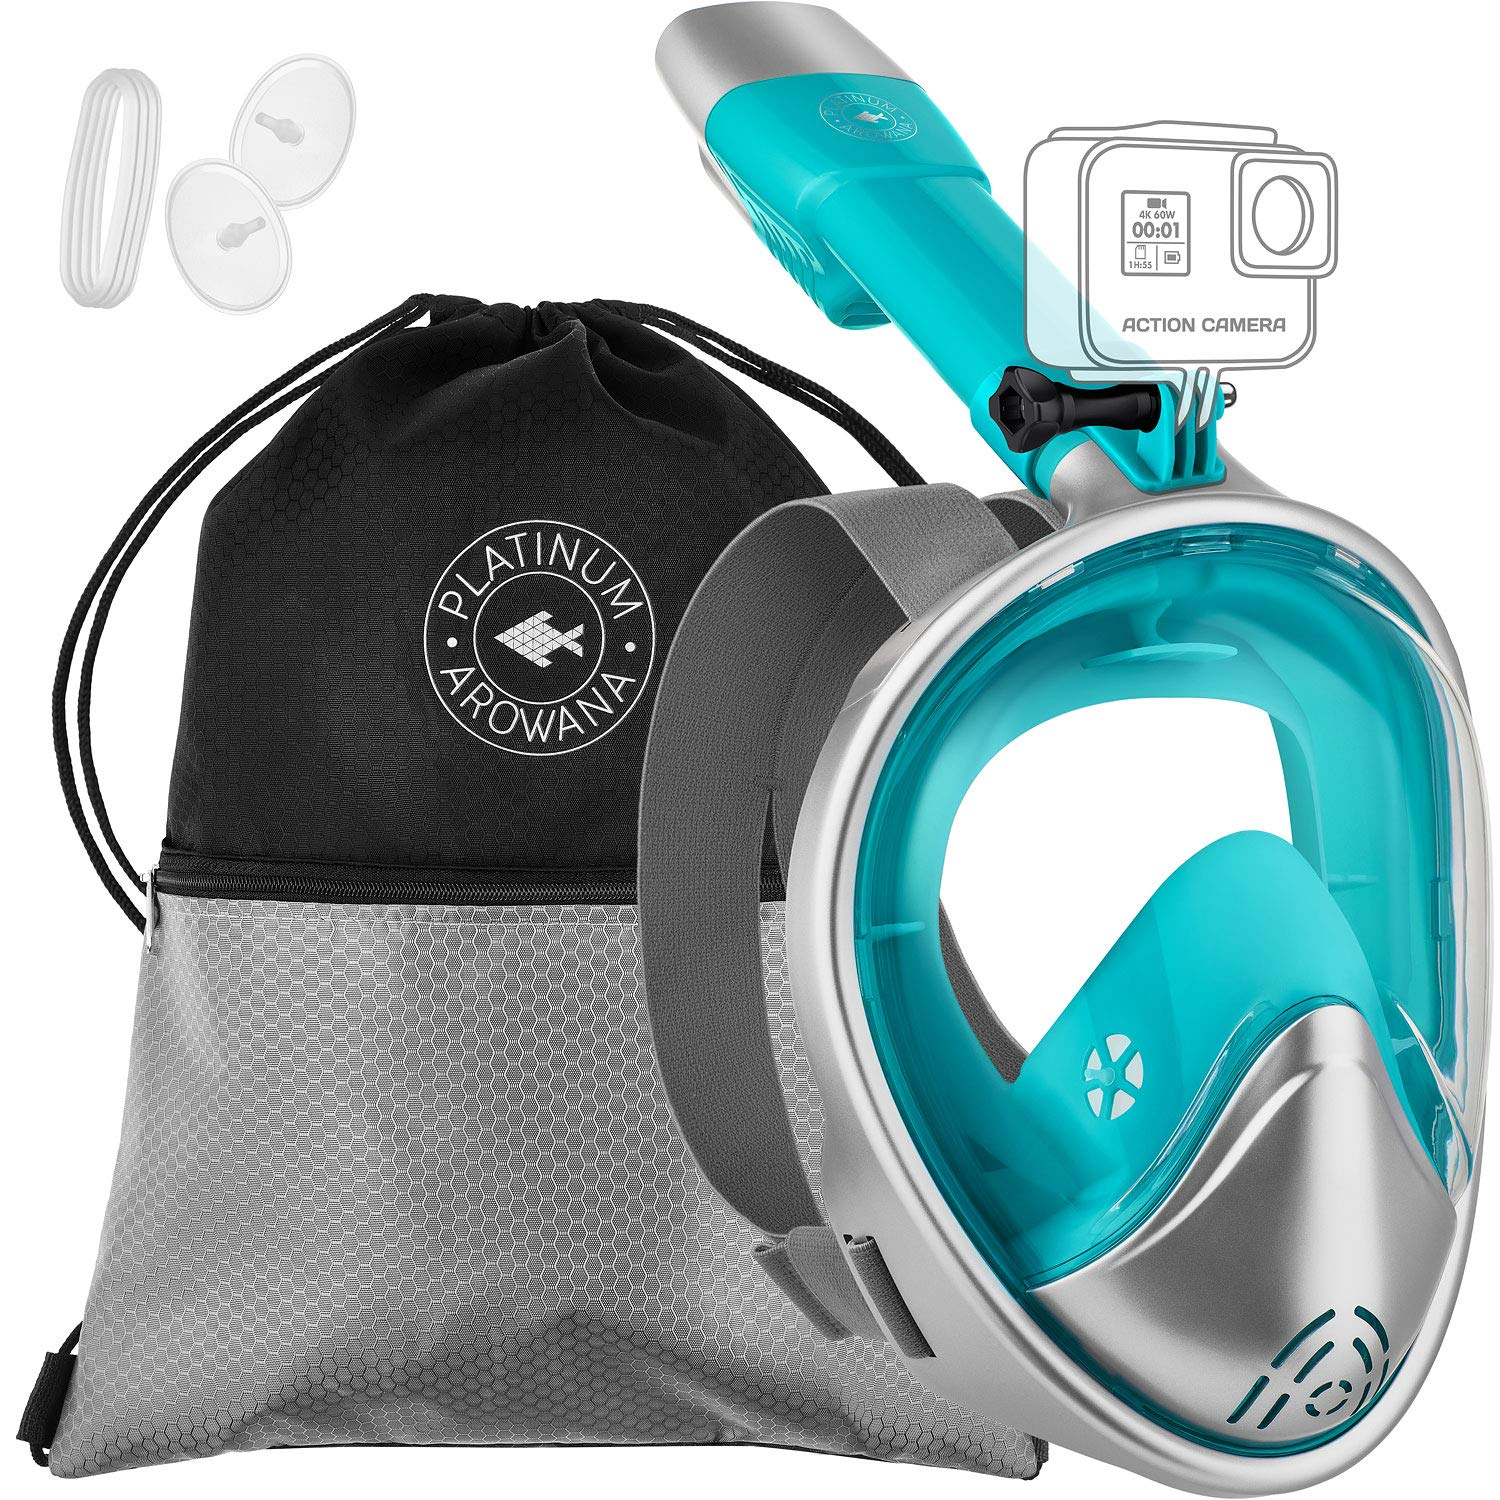 Full Face Snorkel Mask [3 Variations] Panoramic View Curved Face Design Leak Proof 180 Degree Viewing Anti-Fog Anti-Leak Tubeless Scuba Mask Gear Dry Top Water Blocking System Technology Easy Breath by Platinum Arowana